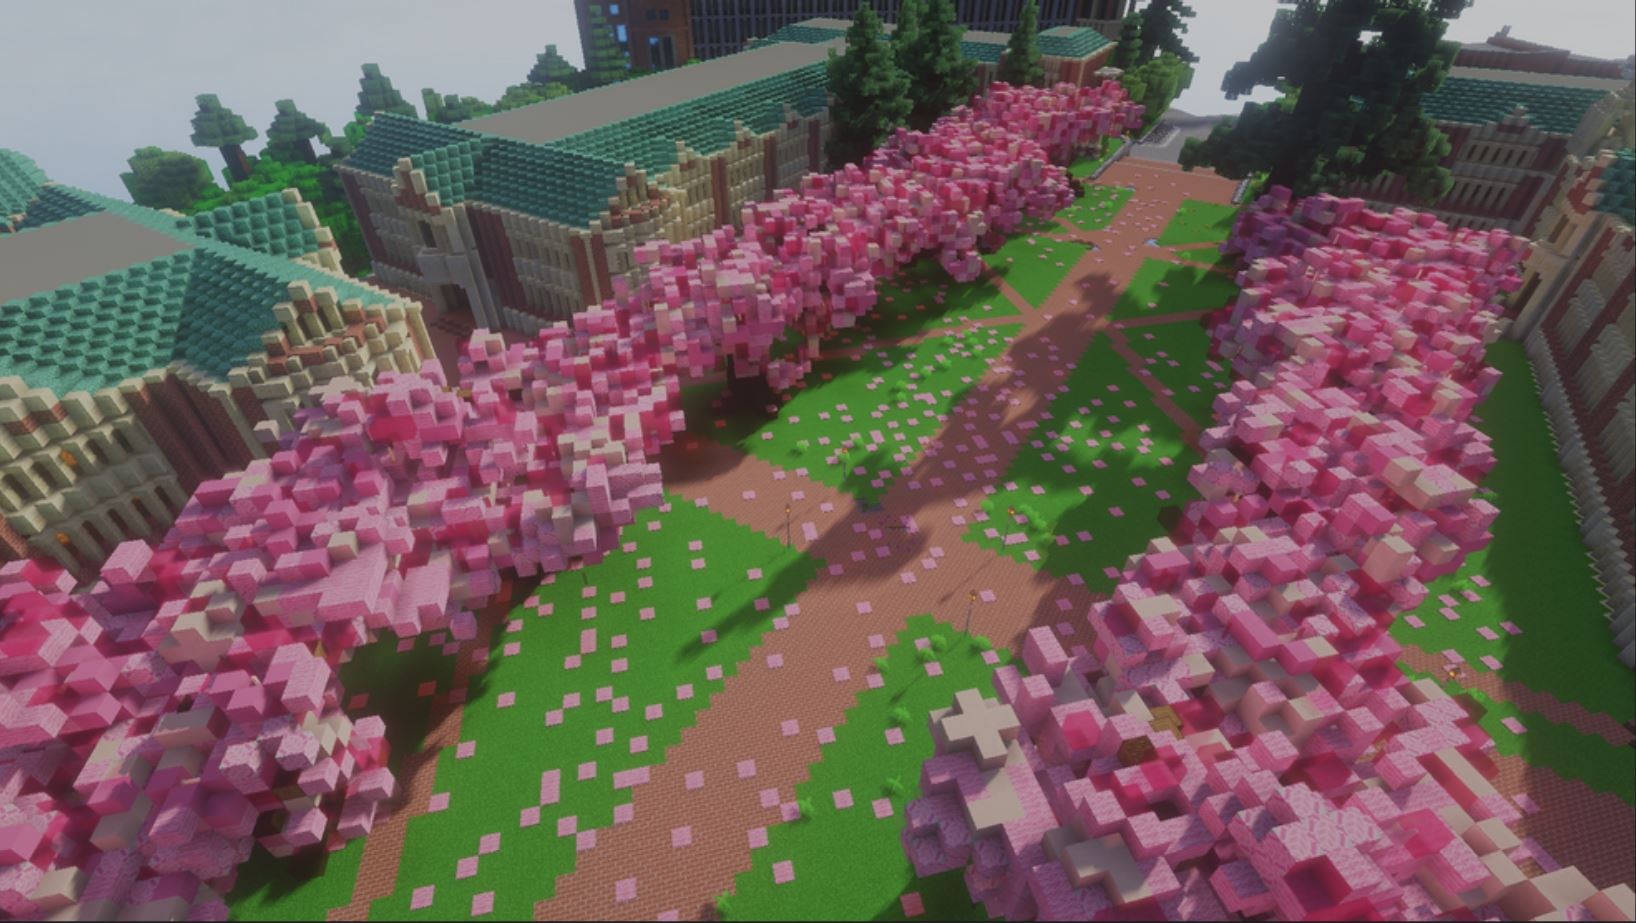 UW Students ReCreate Their College Campus In Minecraft: The Detail Is Fantastic And Worth A Look!